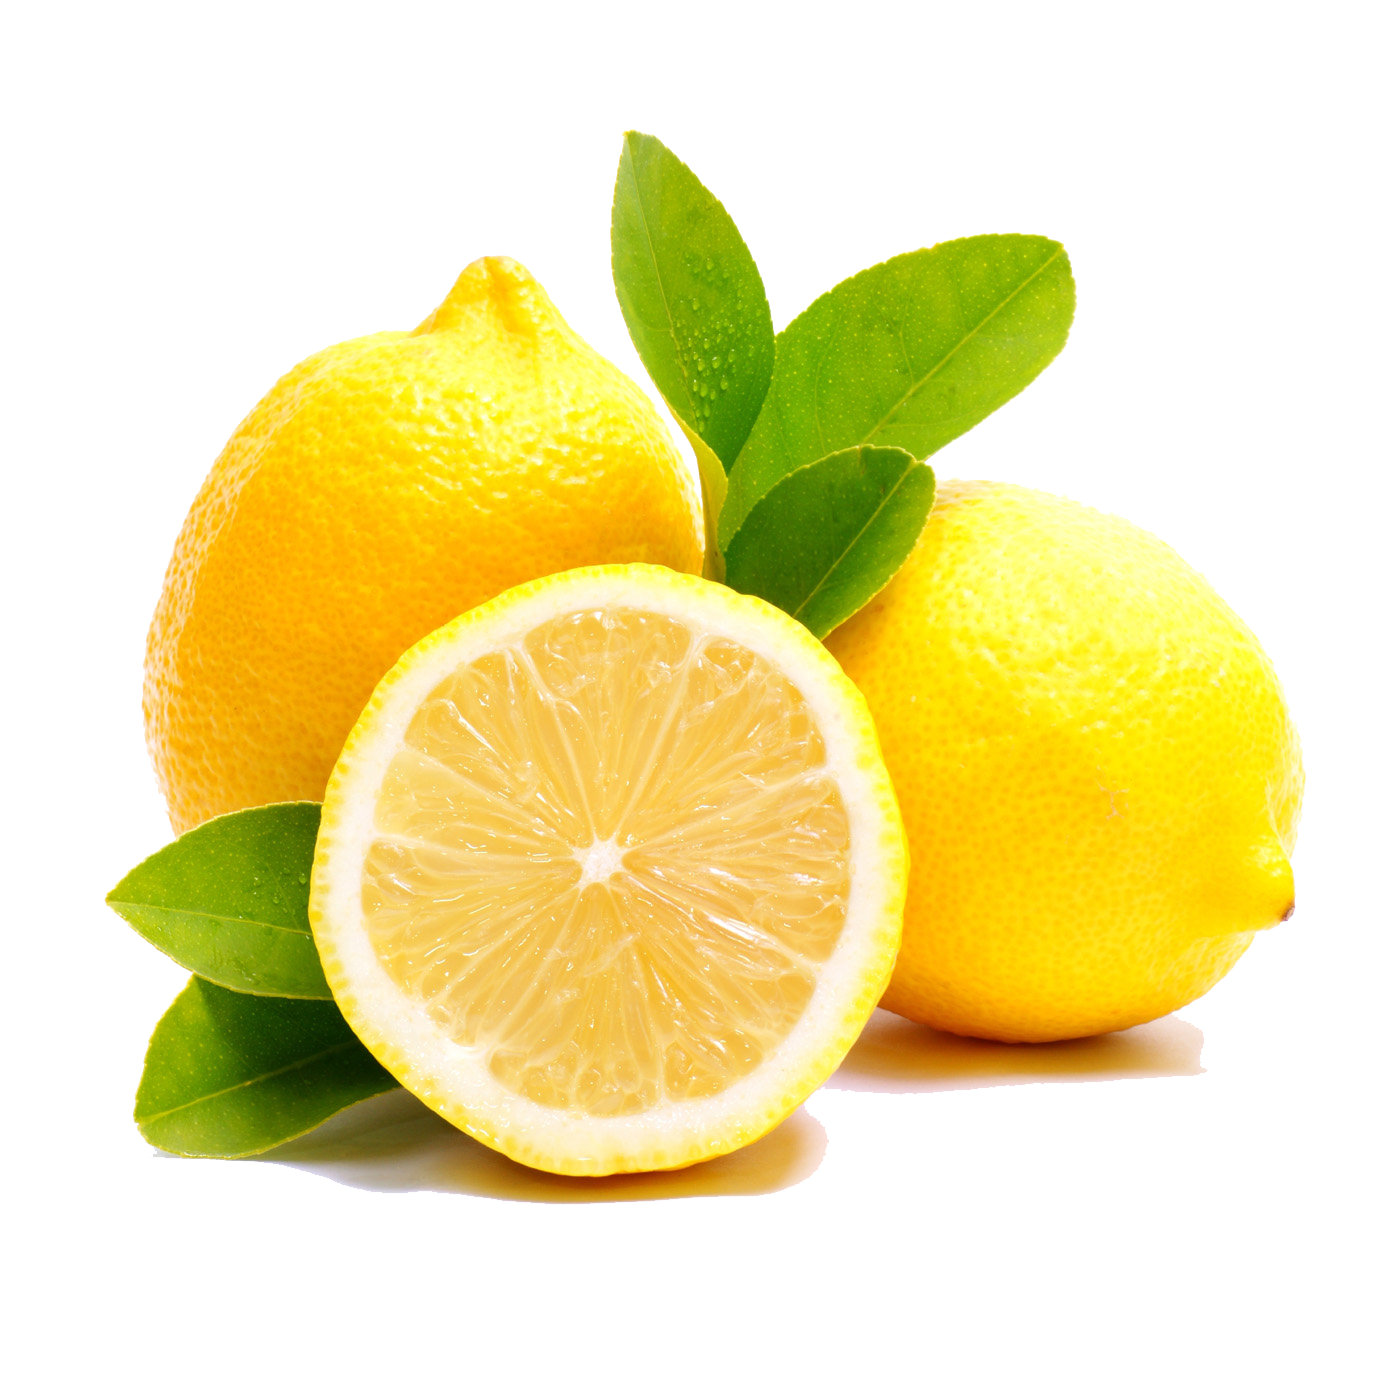 Lemon png transparent images. Lemons clipart lime